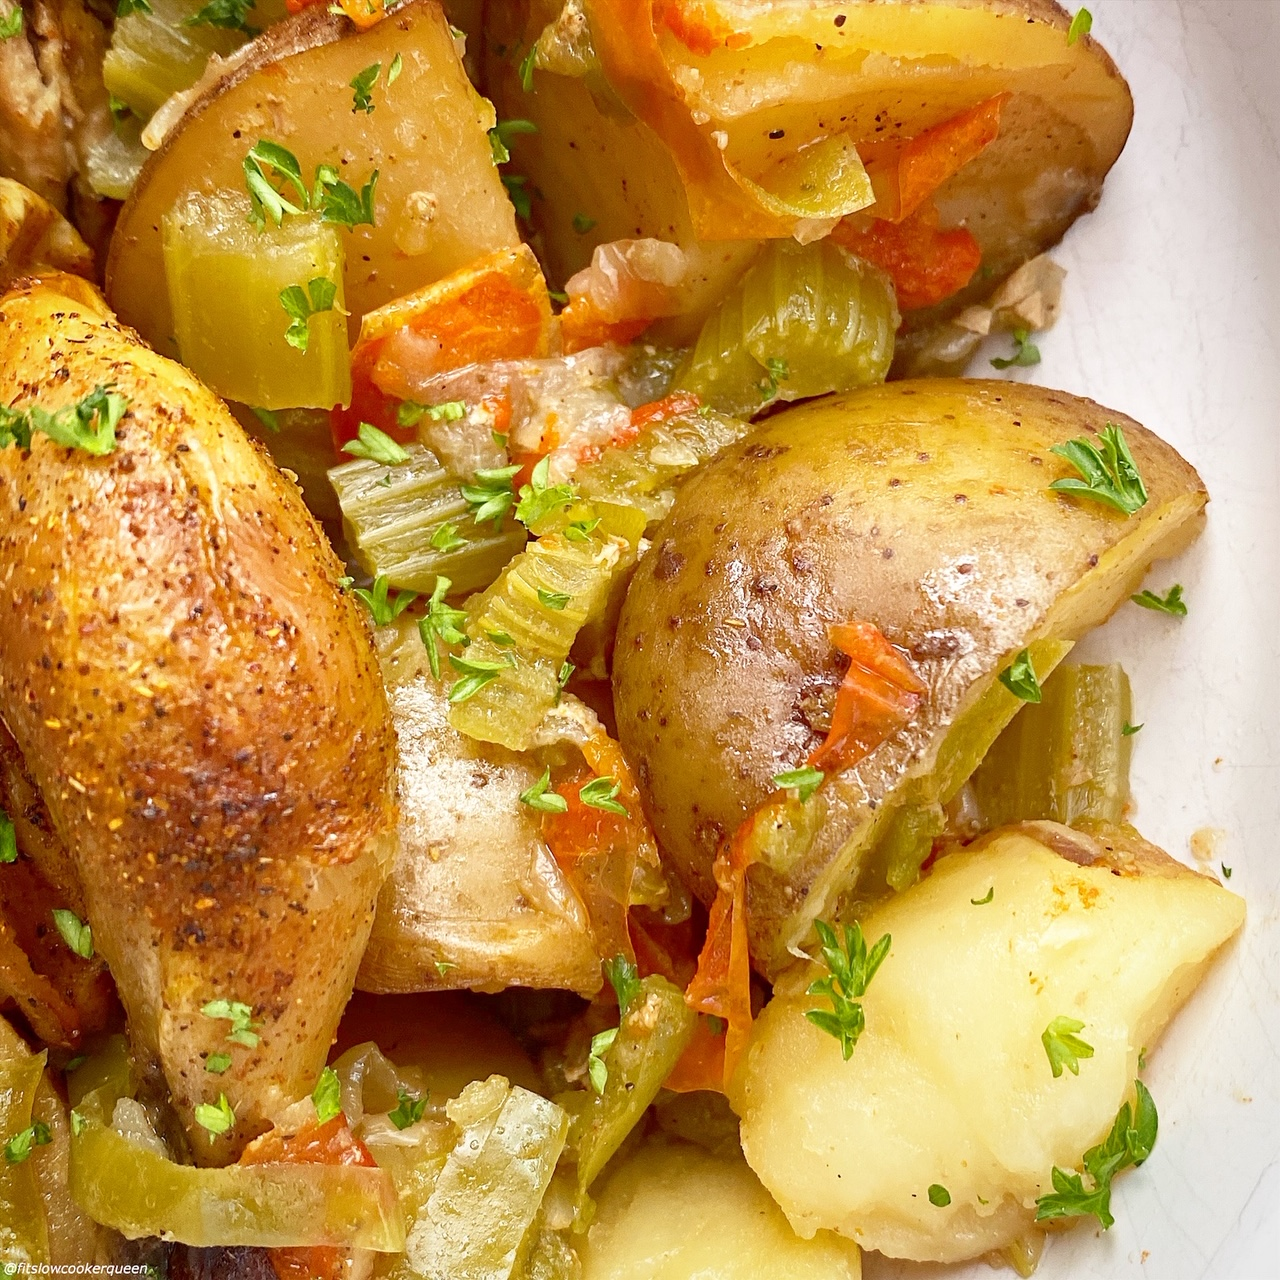 plated, cooked potatoes, bell peppers, onions, and celery